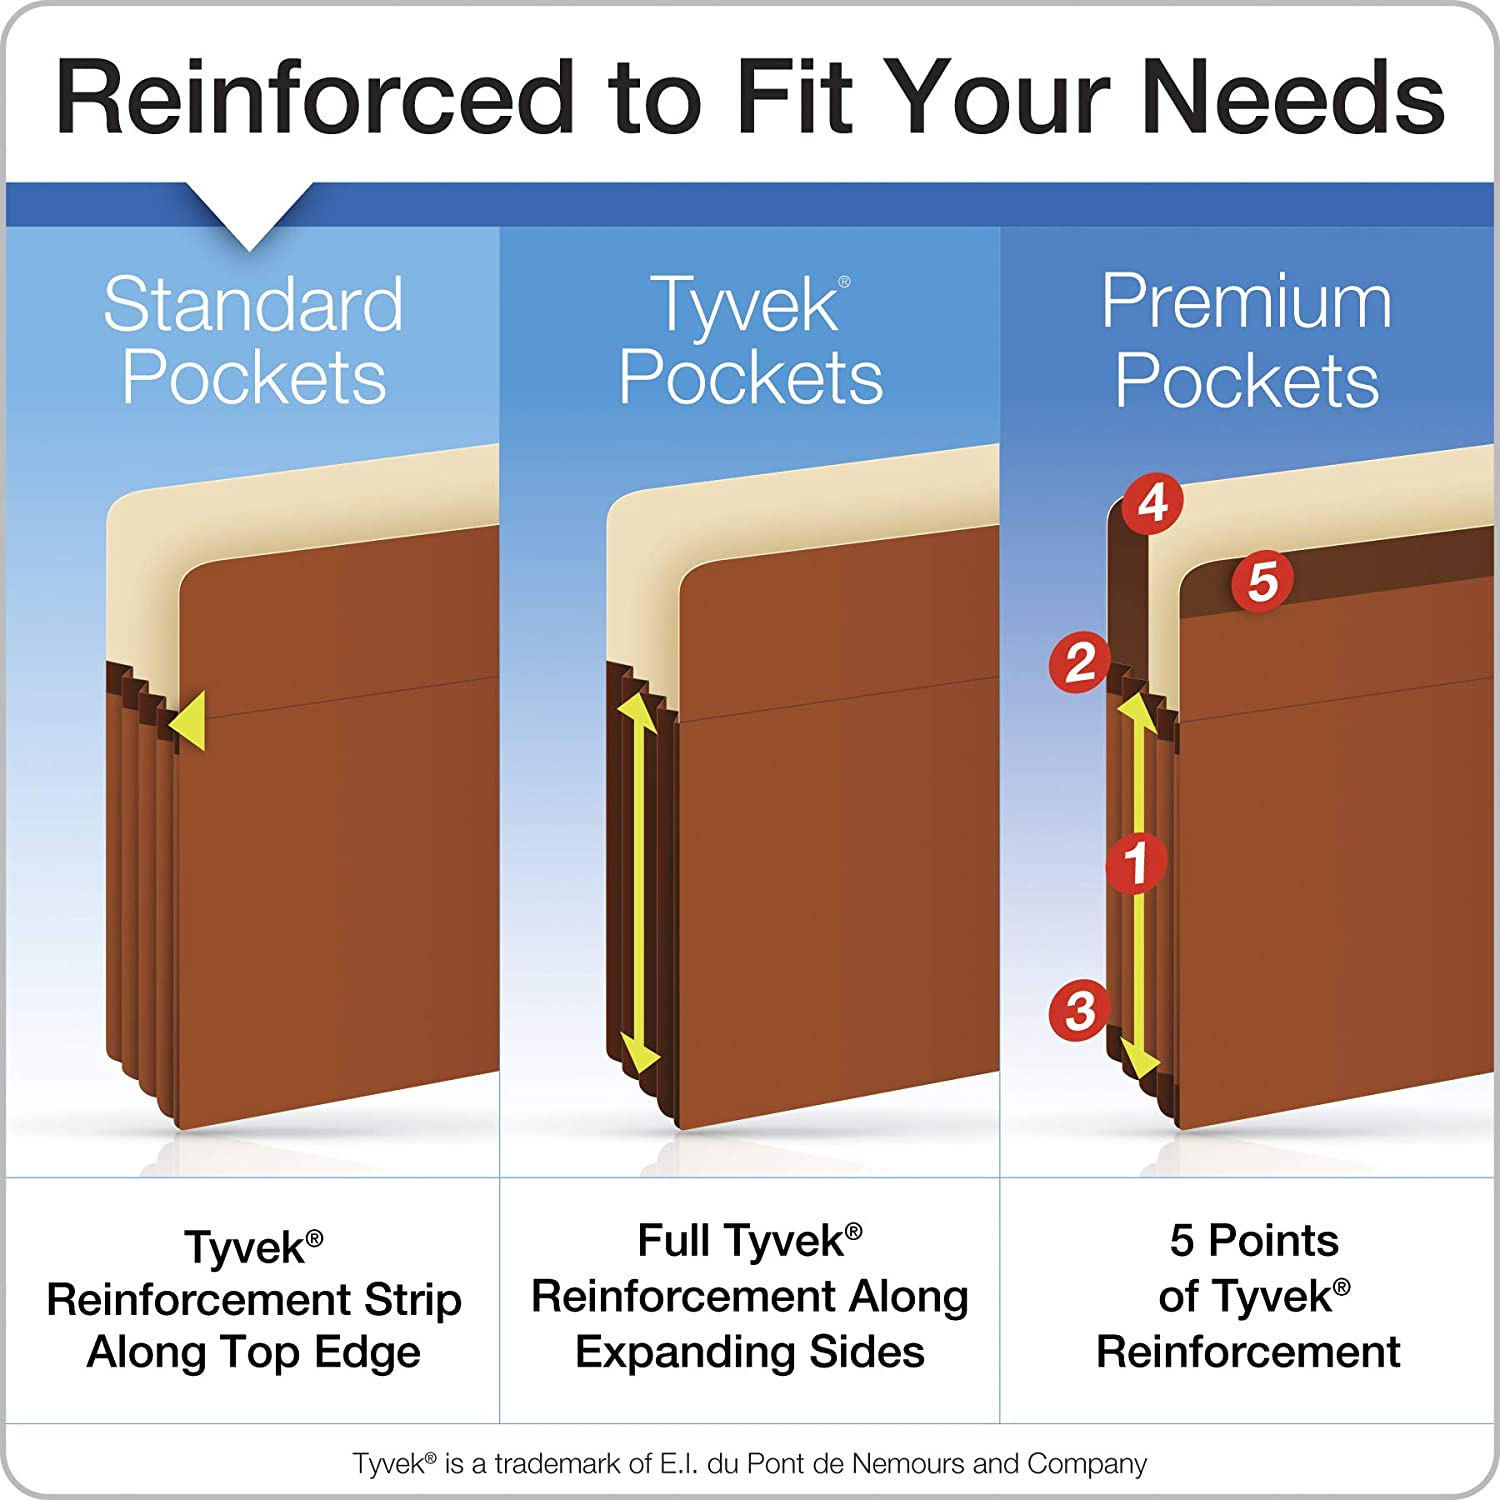 """Pendaflex Expanding File Pockets, Letter Size, 5.25"""" Expansion, Reinforced with DuPont Tyvek Material, Letter Size, Redrope, 10 Per Box (1534G-OX) : Expanding File Jackets And Pockets : Office Products"""